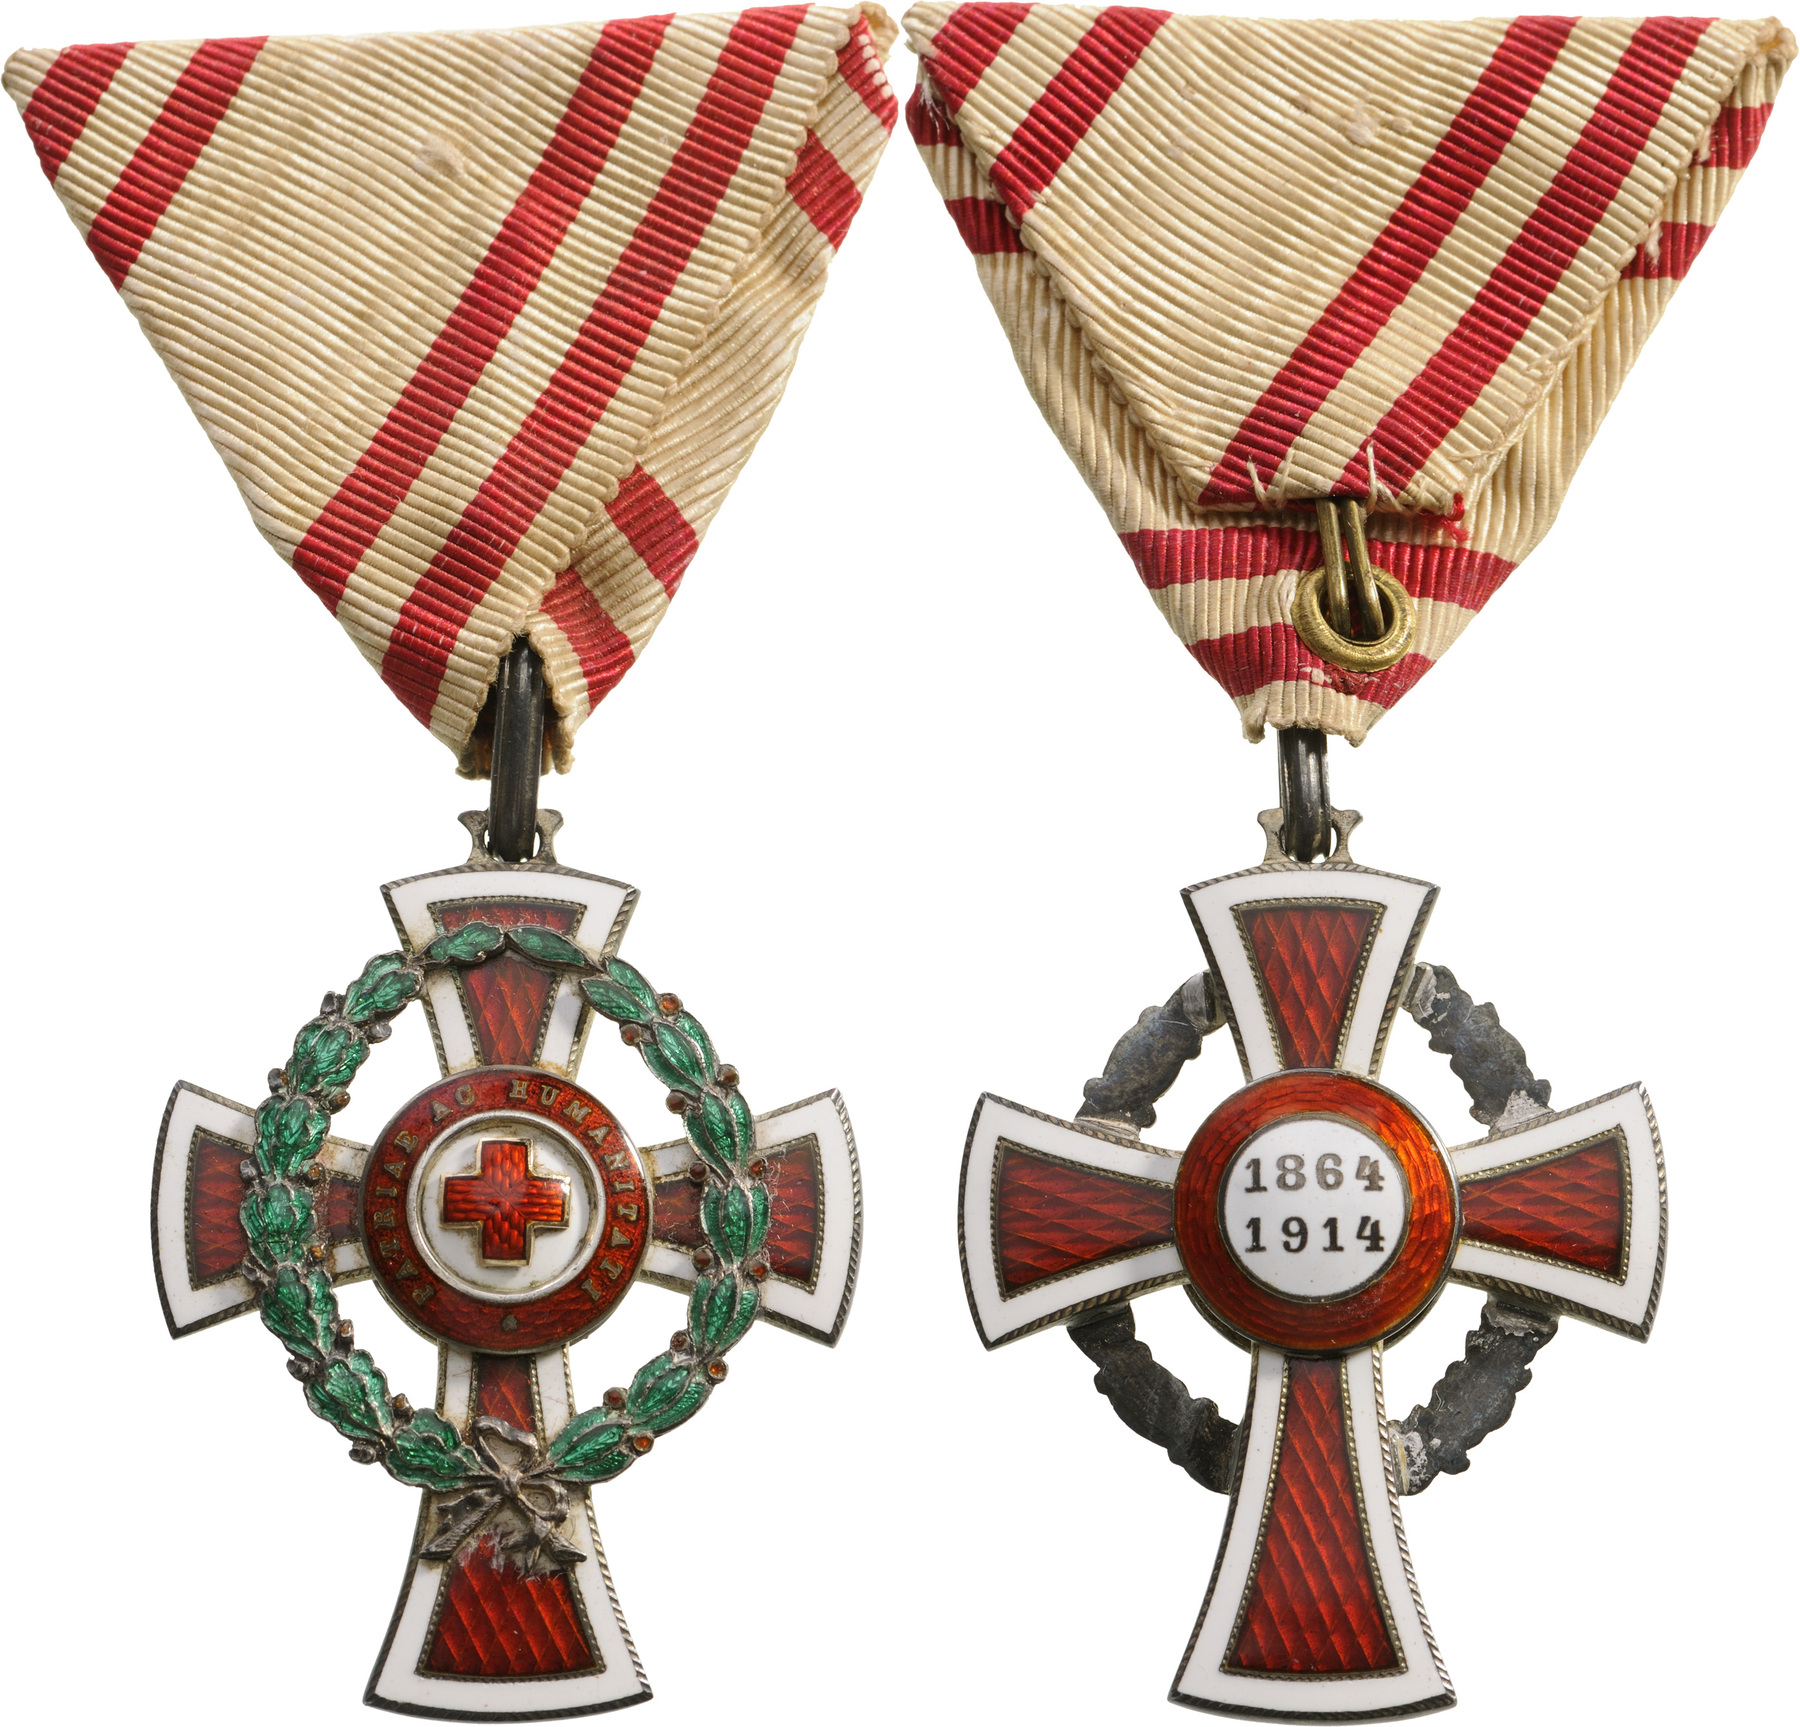 Lot 1370 - HONOR DECORATION OF THE RED CROSS